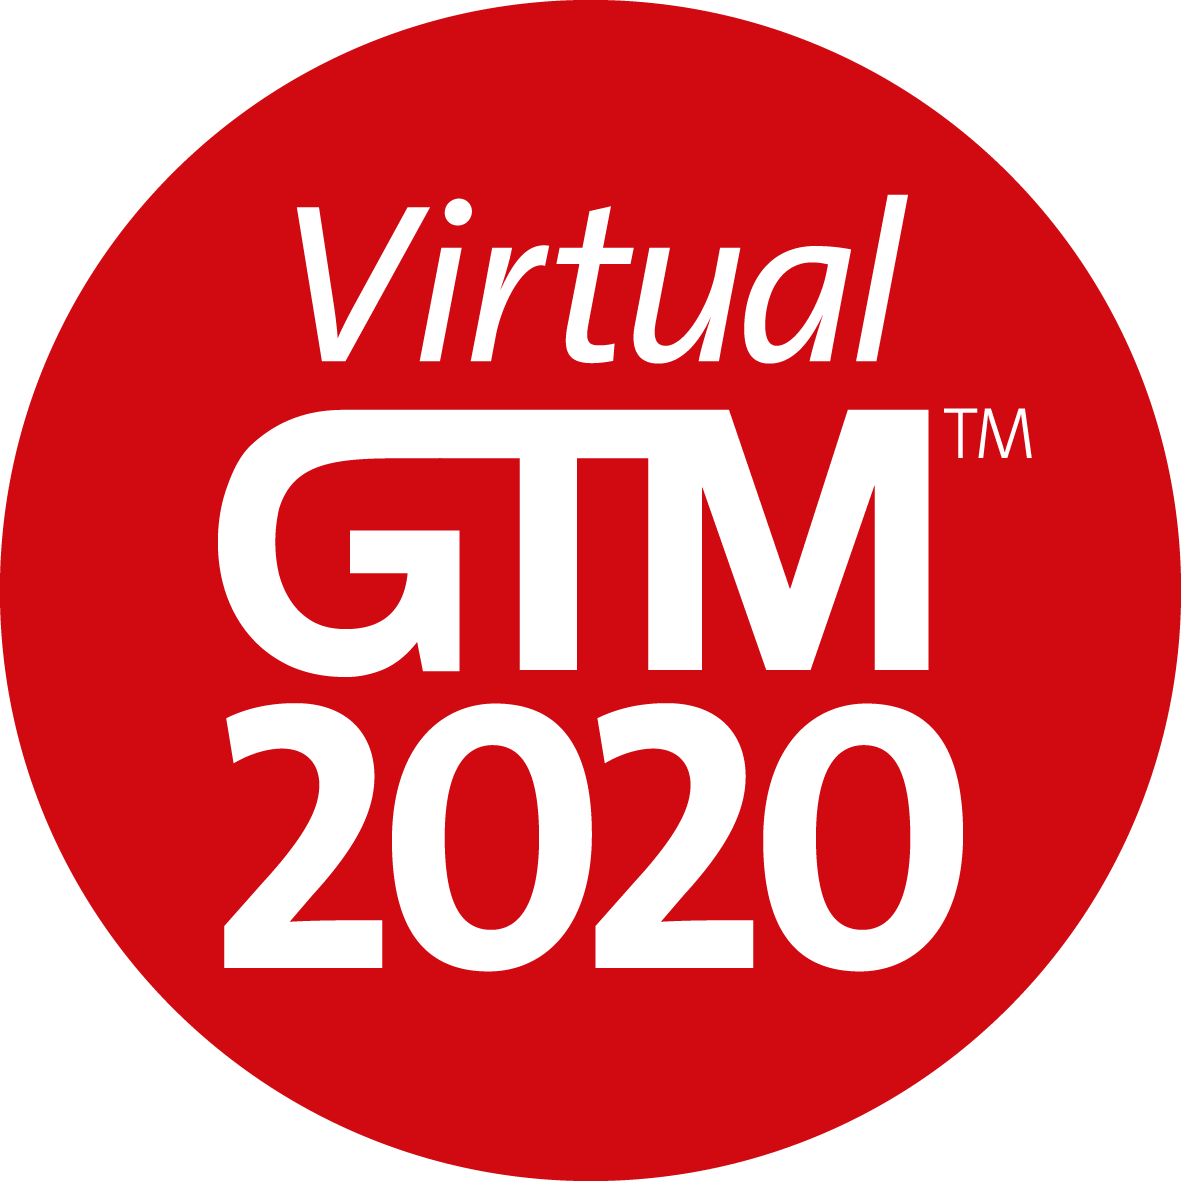 GTM 2020 virtuell